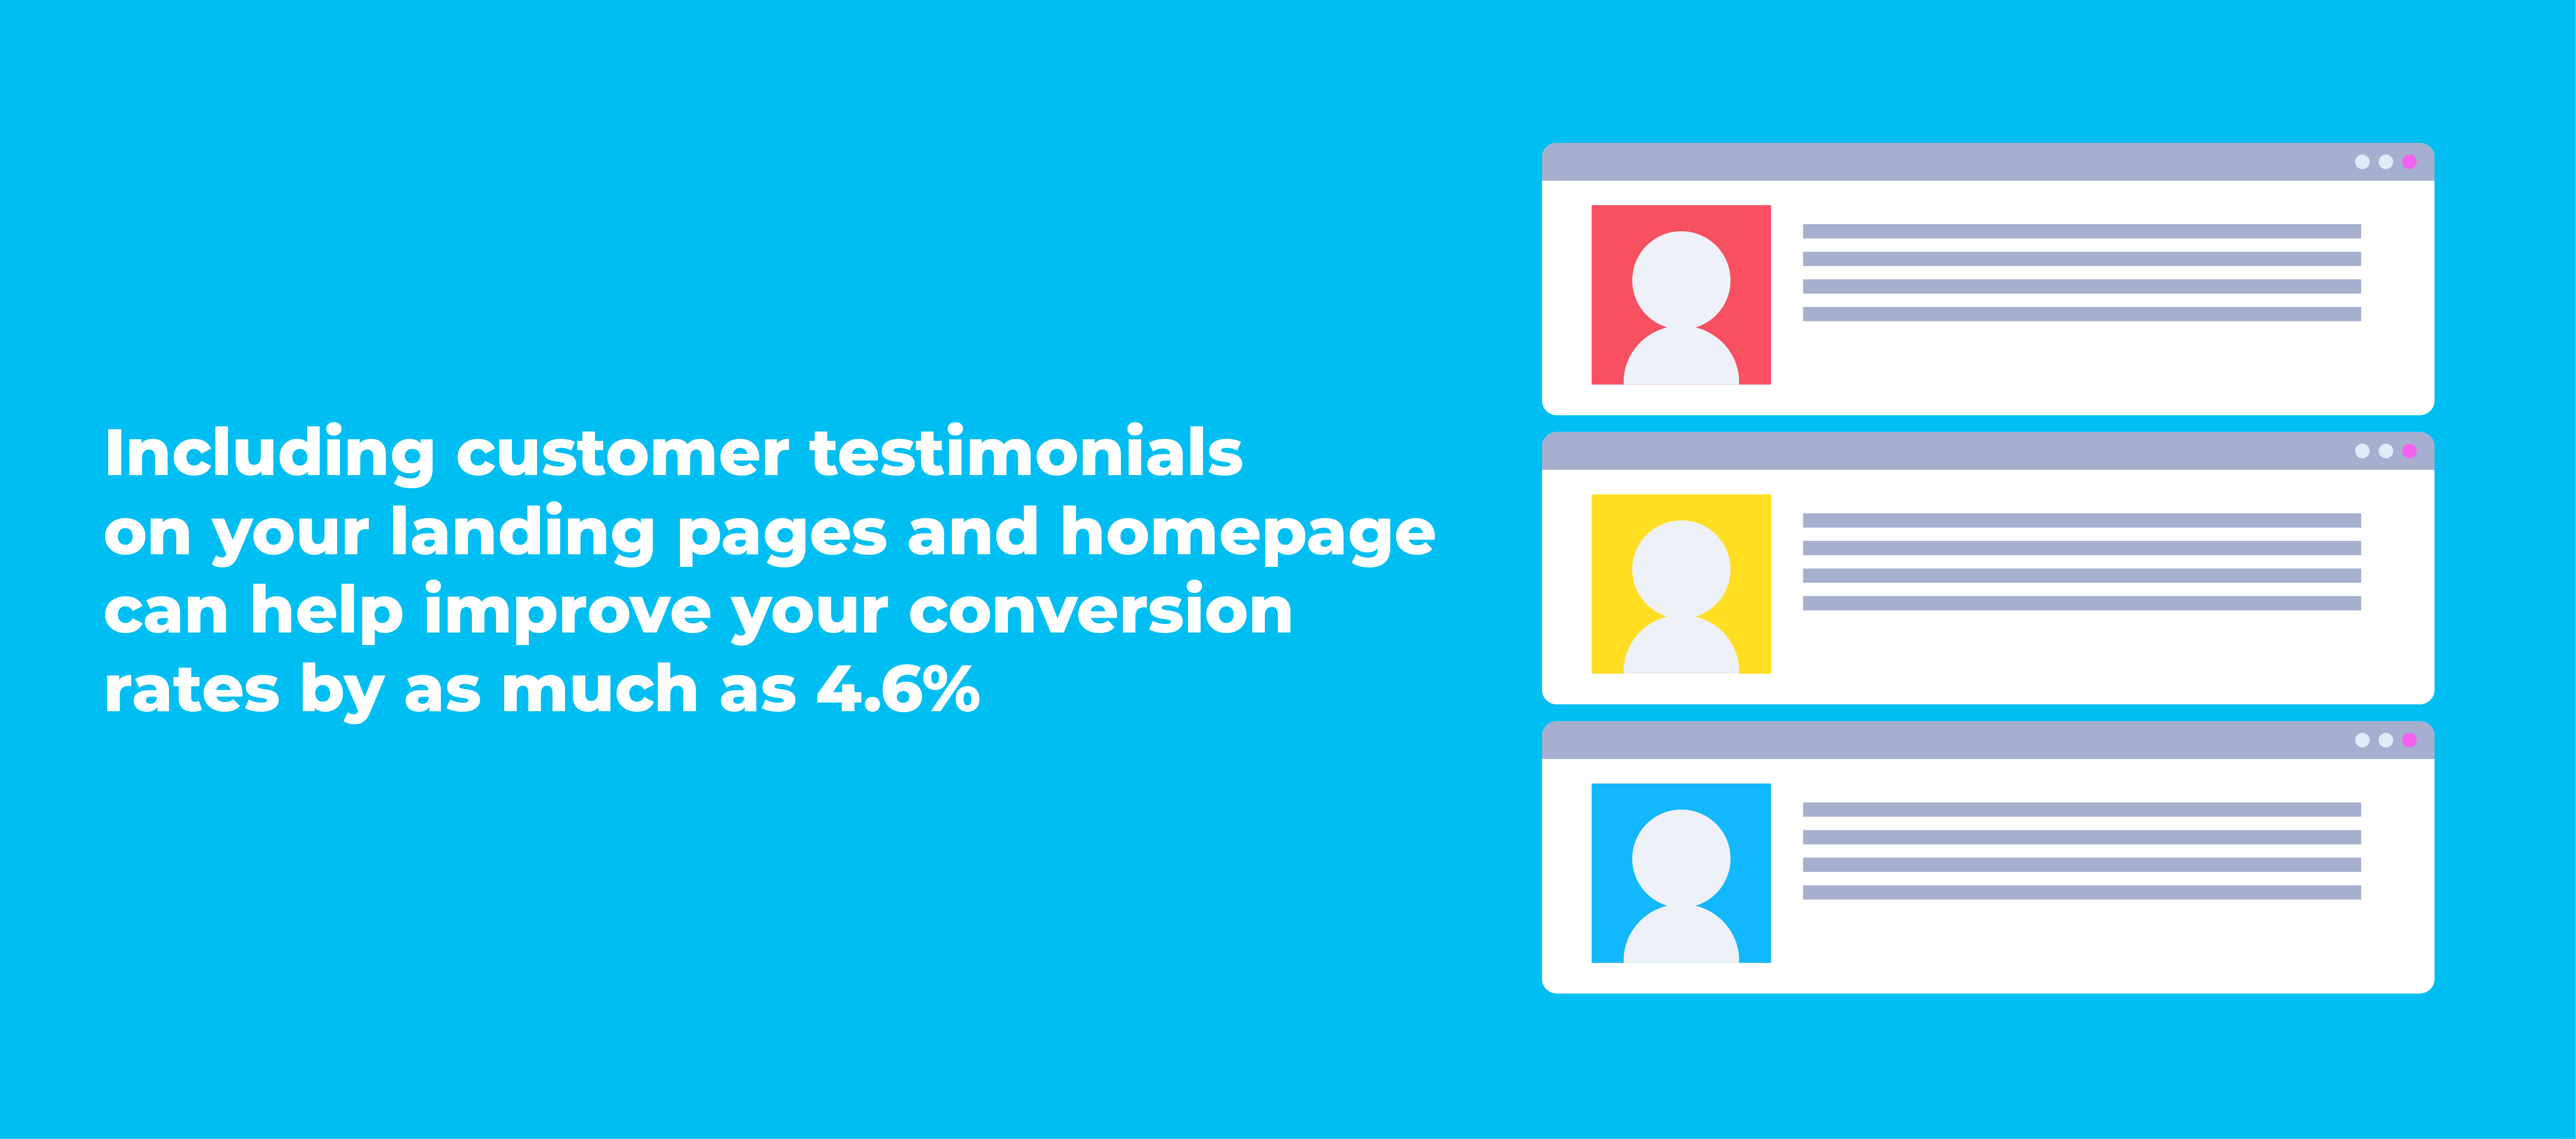 Including customer testimonials on your landing pages and homepage can help improve your conversion rates by as much as 4.6%.